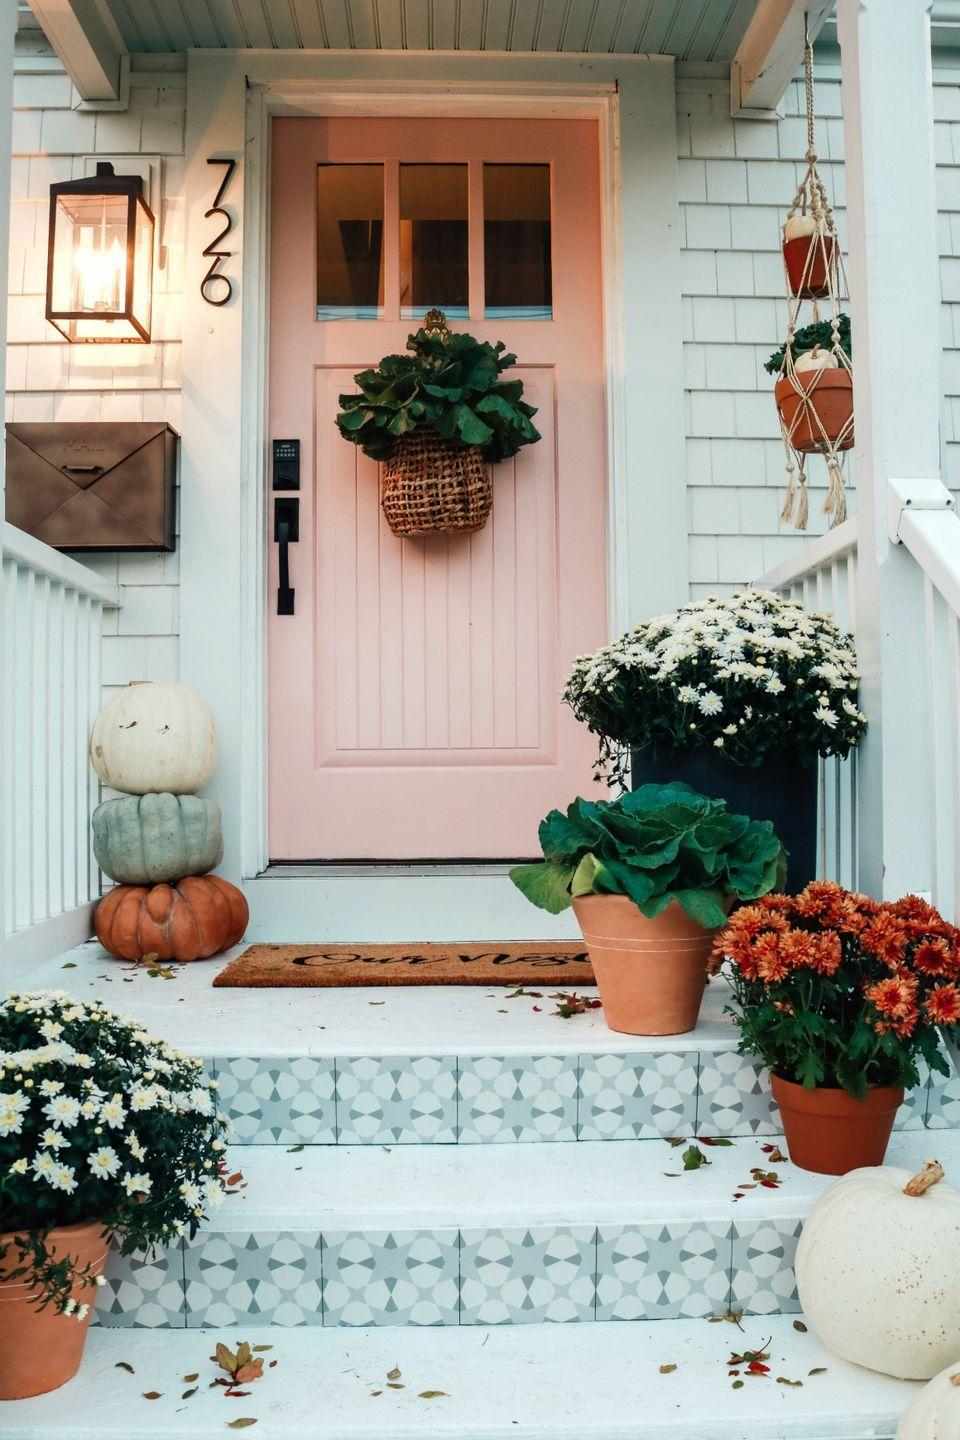 """<p>Sometimes creating a cozy outdoor pumpkin display is as simple as stacking your pumpkins and setting out a few potted plants. </p><p><strong>See more at <a href=""""https://nestingwithgrace.com/fall-front-porch-and-tile-front-steps/"""" rel=""""nofollow noopener"""" target=""""_blank"""" data-ylk=""""slk:Nesting With Grace"""" class=""""link rapid-noclick-resp"""">Nesting With Grace</a>. </strong></p><p><a class=""""link rapid-noclick-resp"""" href=""""https://www.amazon.com/Gresorth-Halloween-Decorative-Artificial-Decoration/dp/B019QKLX82?tag=syn-yahoo-20&ascsubtag=%5Bartid%7C2164.g.36877187%5Bsrc%7Cyahoo-us"""" rel=""""nofollow noopener"""" target=""""_blank"""" data-ylk=""""slk:SHOP WHITE PUMPKINS"""">SHOP WHITE PUMPKINS</a></p>"""